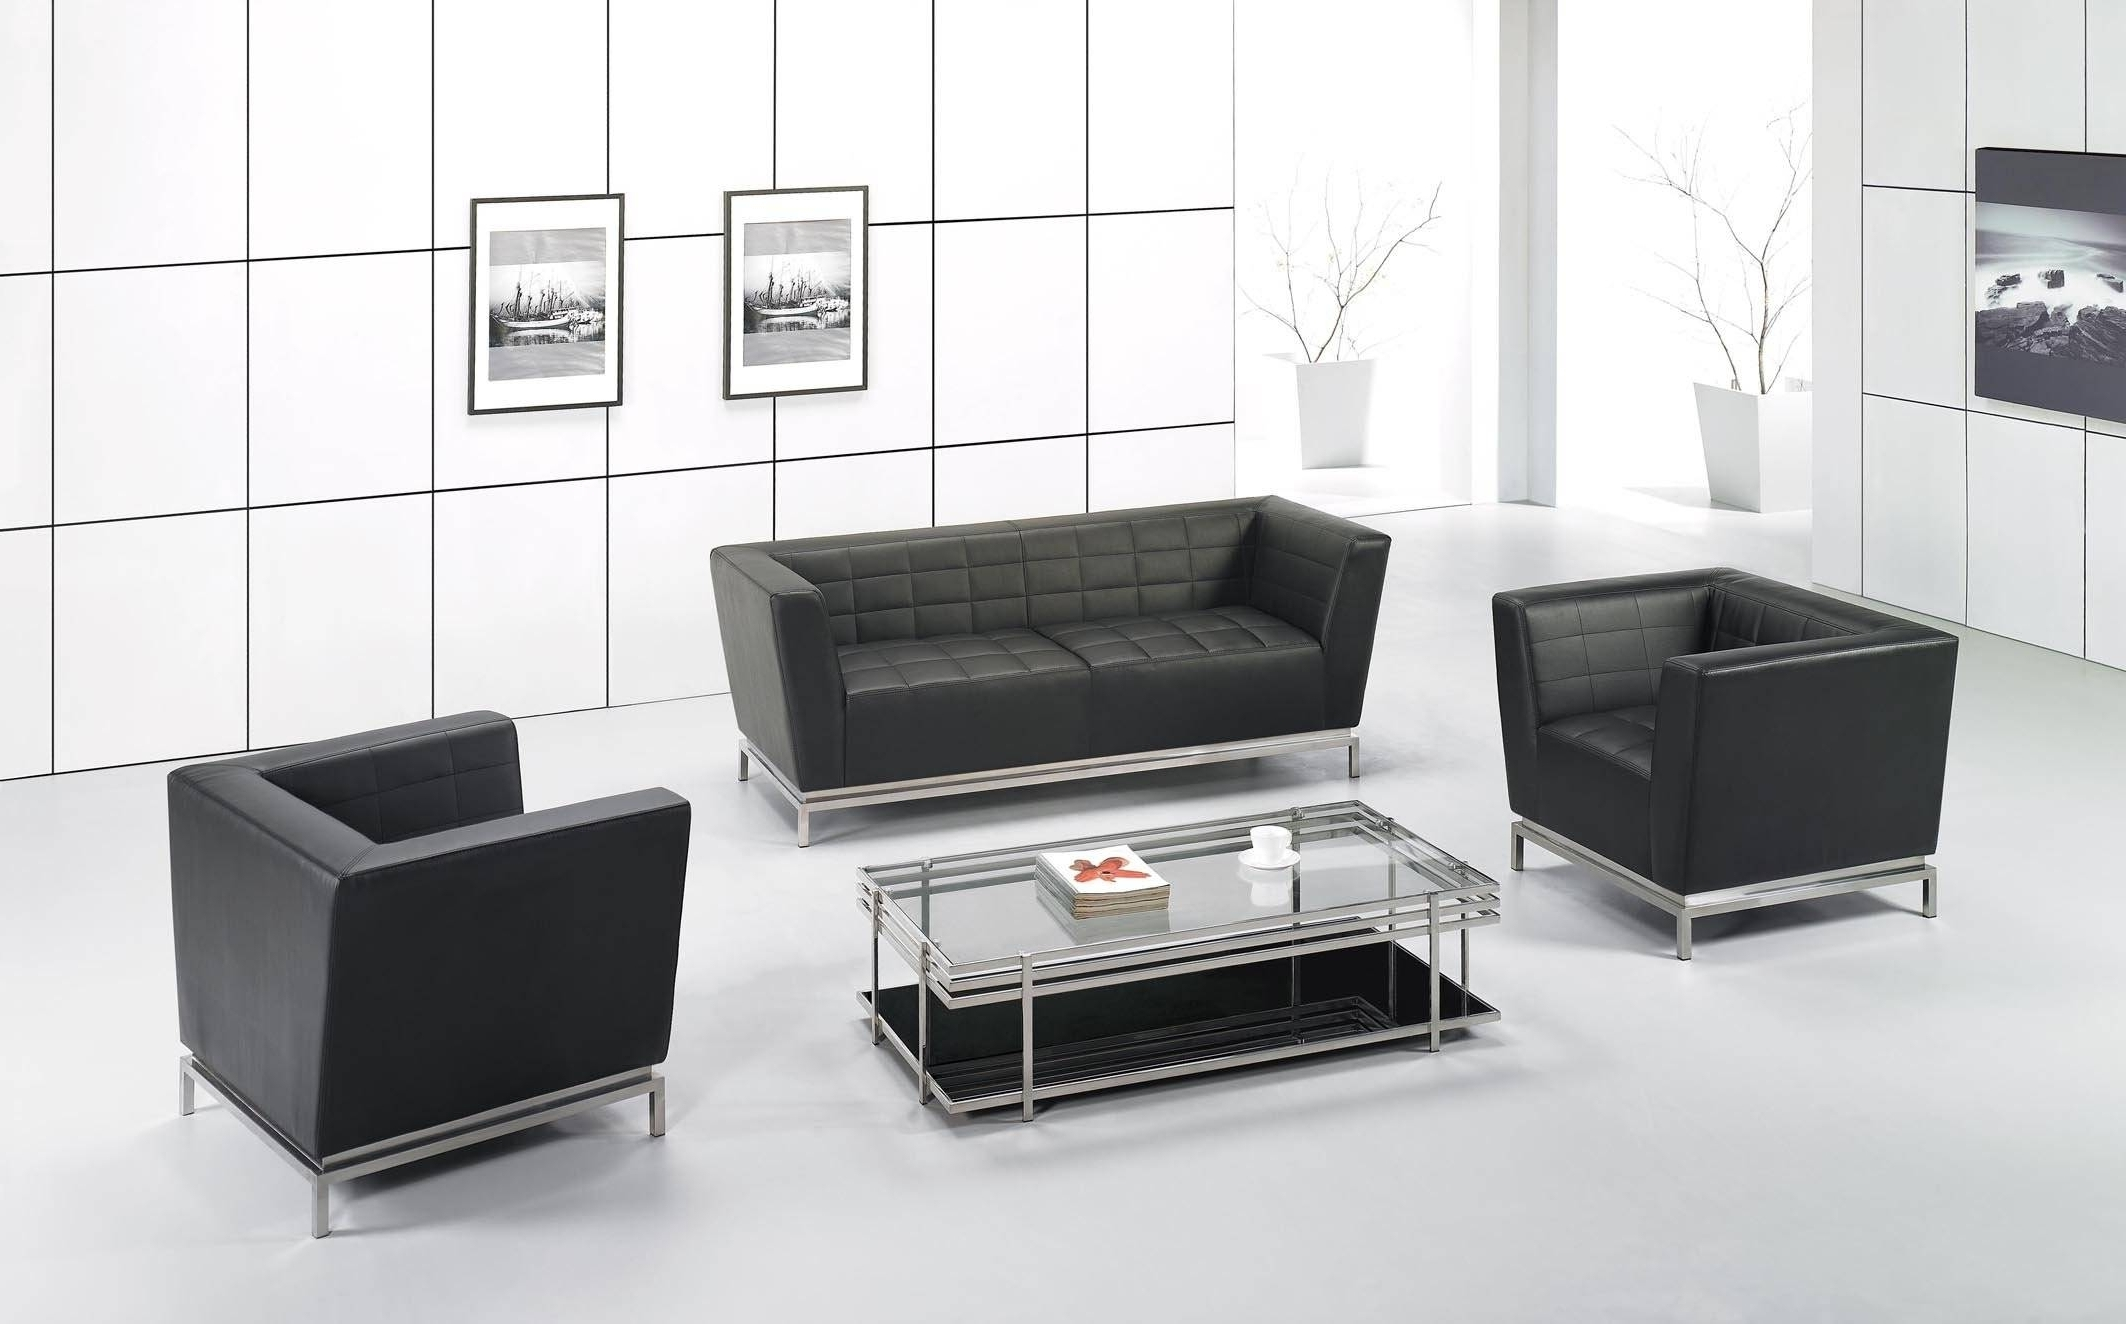 Fashionable Comfortable Office Chair Office Desk Chairs Leather Desk Chair Throughout Office Sofas And Chairs (View 7 of 15)